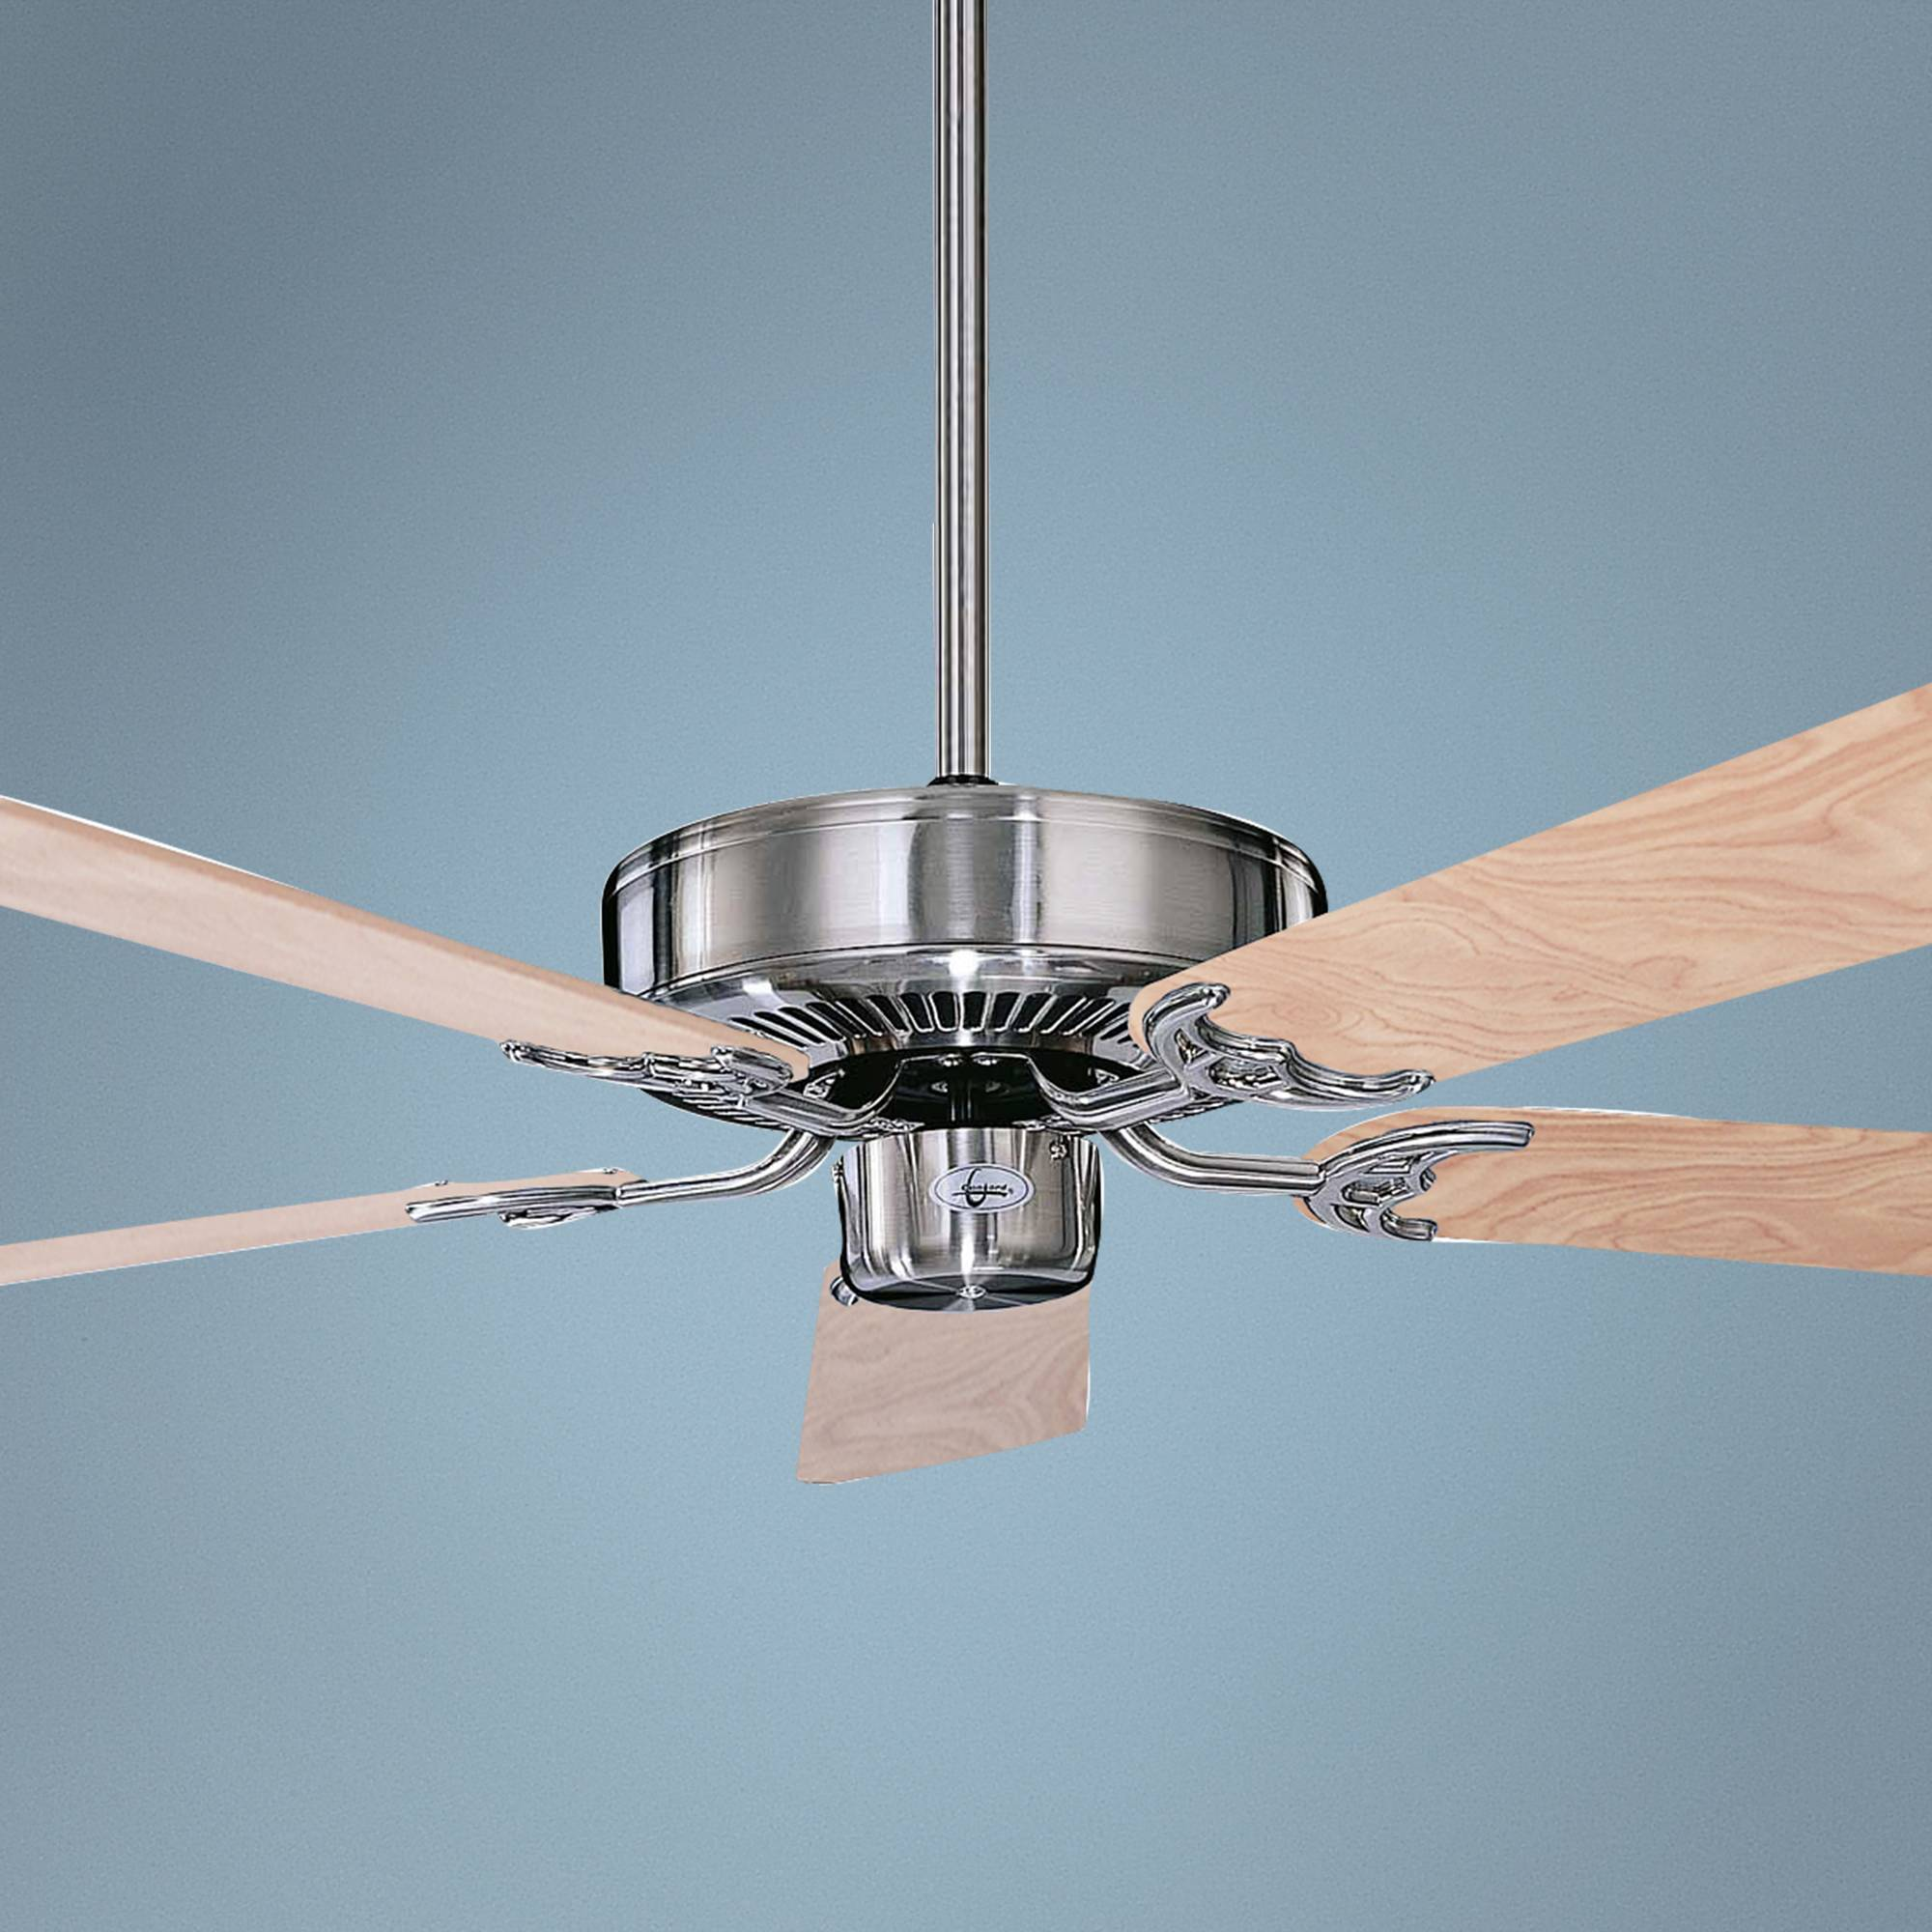 52 Quot Canfield Kichler Energy Star White Ceiling Fan